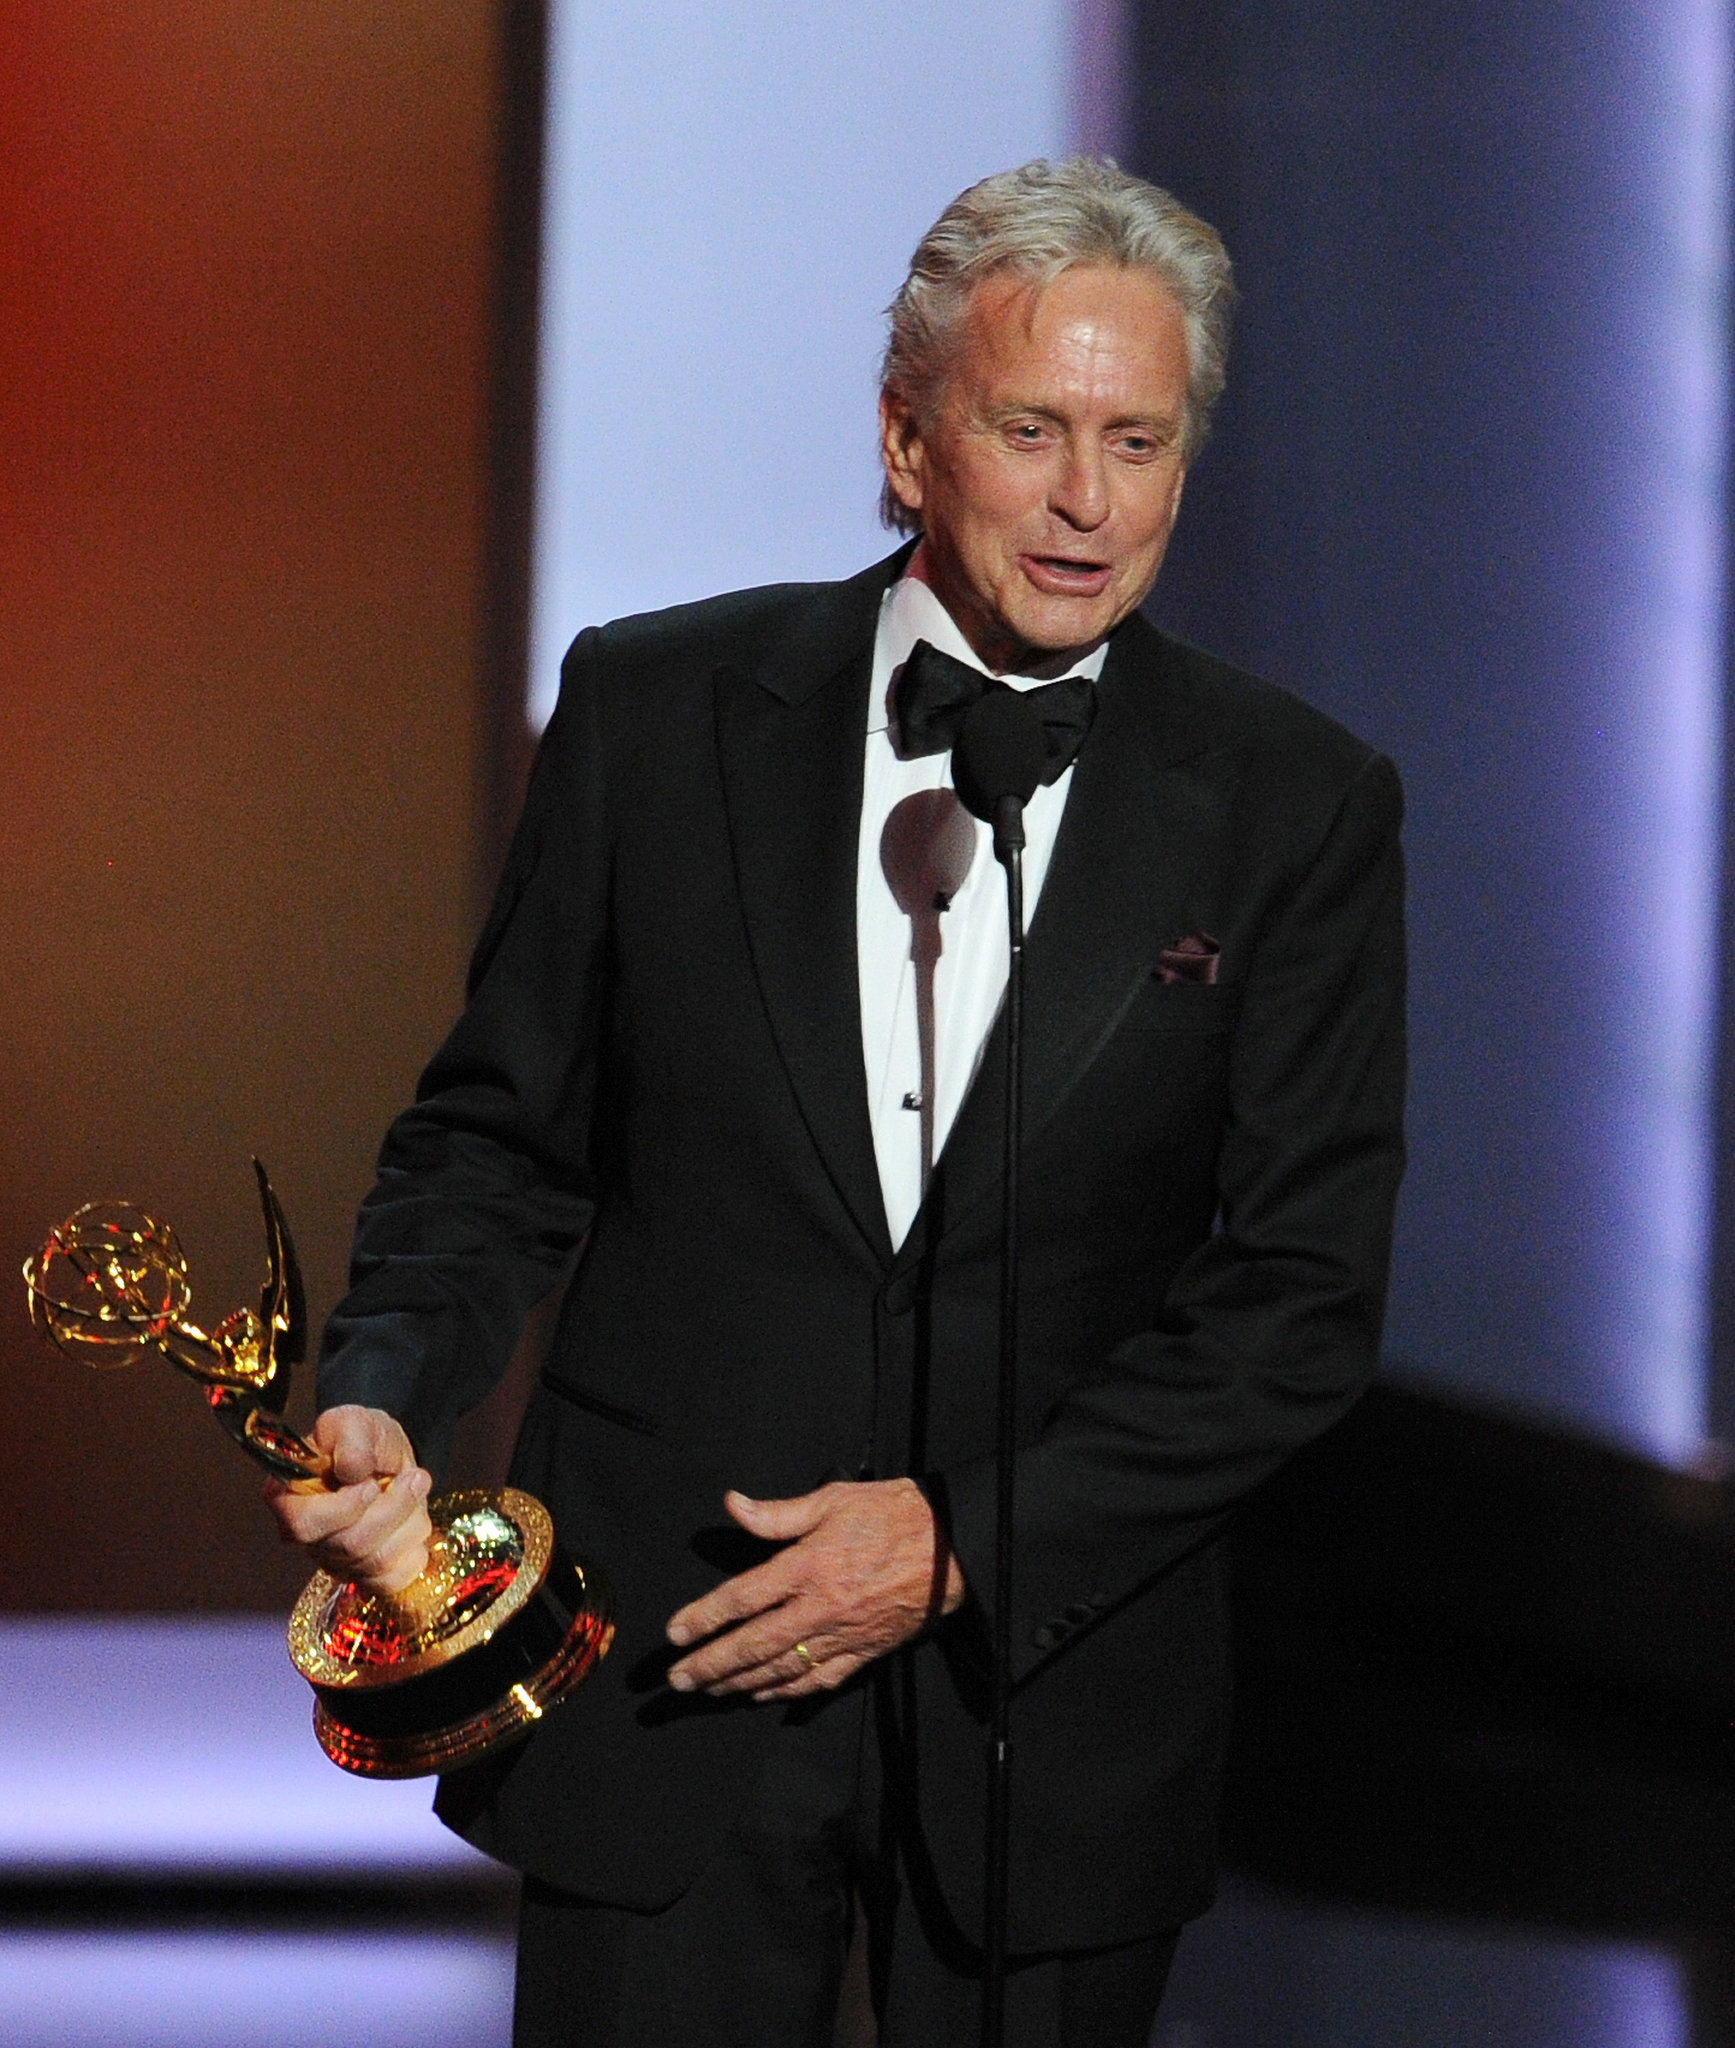 Michael Douglas accepted the award for his role in Behind the Candelabra, thanking his costar Matt Damon.